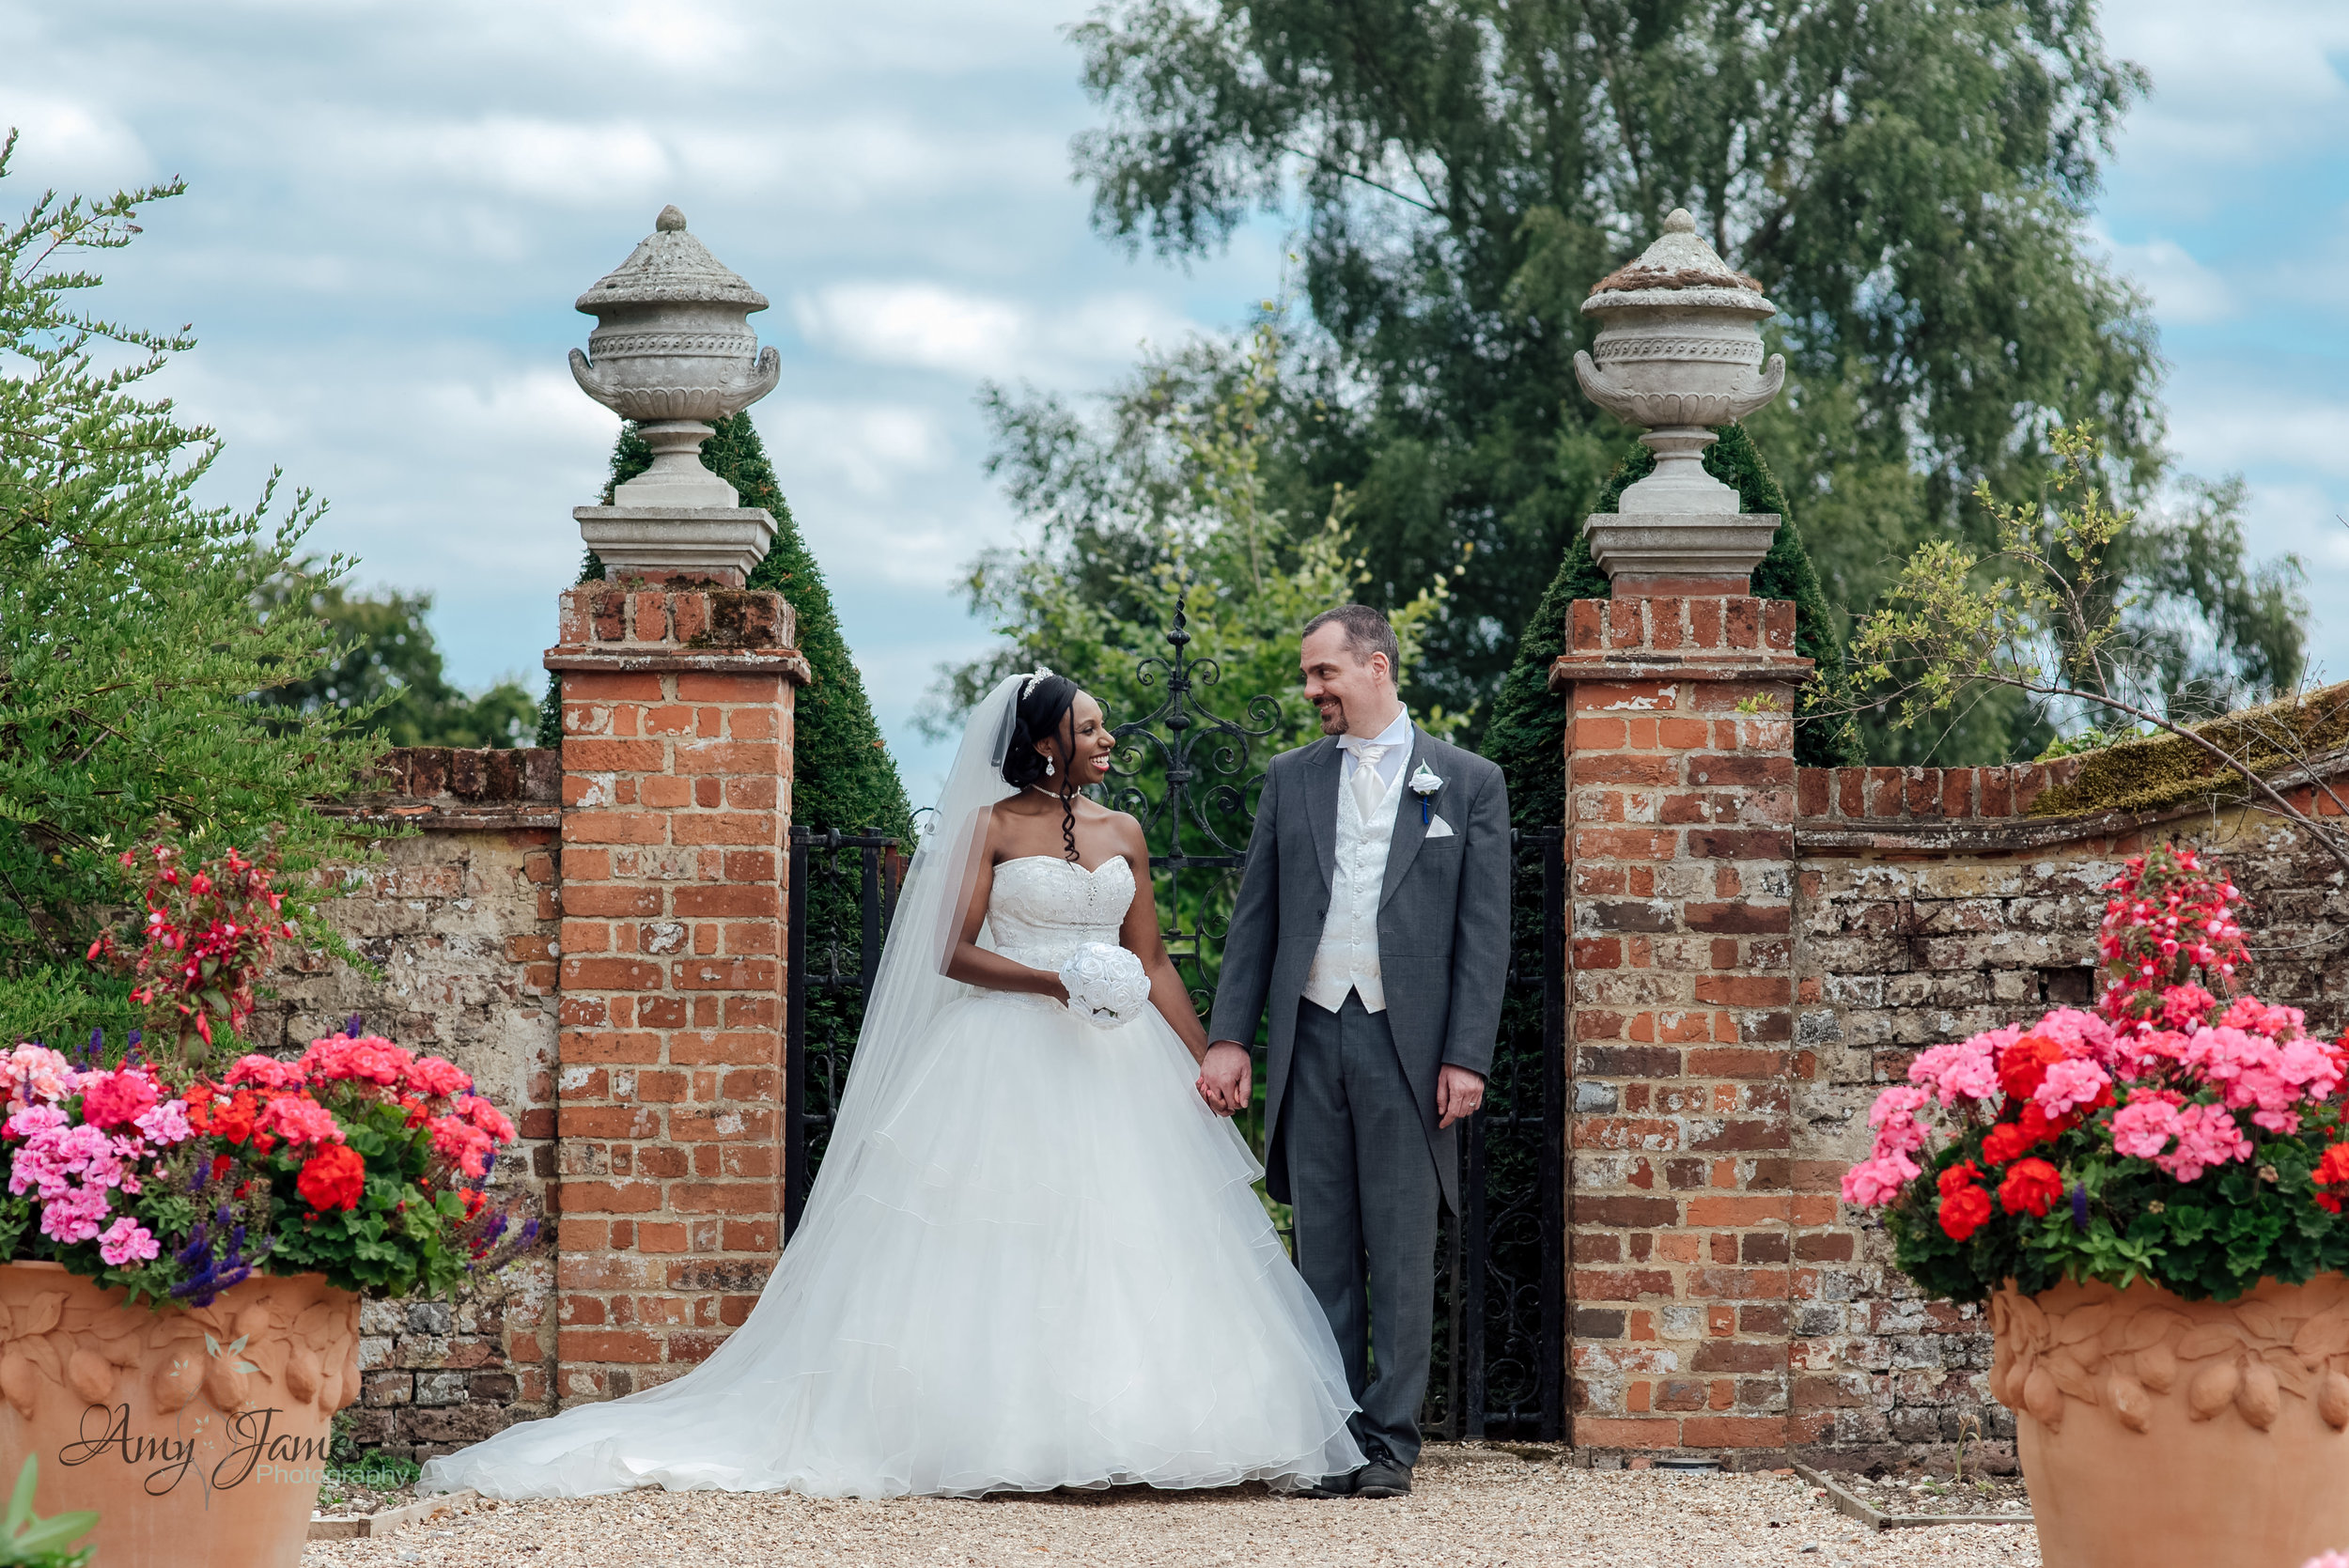 Bride and Groom at the Hampshire Four Seasons Hotel Wedding Venue by Amy James  Photography  Wedding Photographer for Hampshire and Surrey